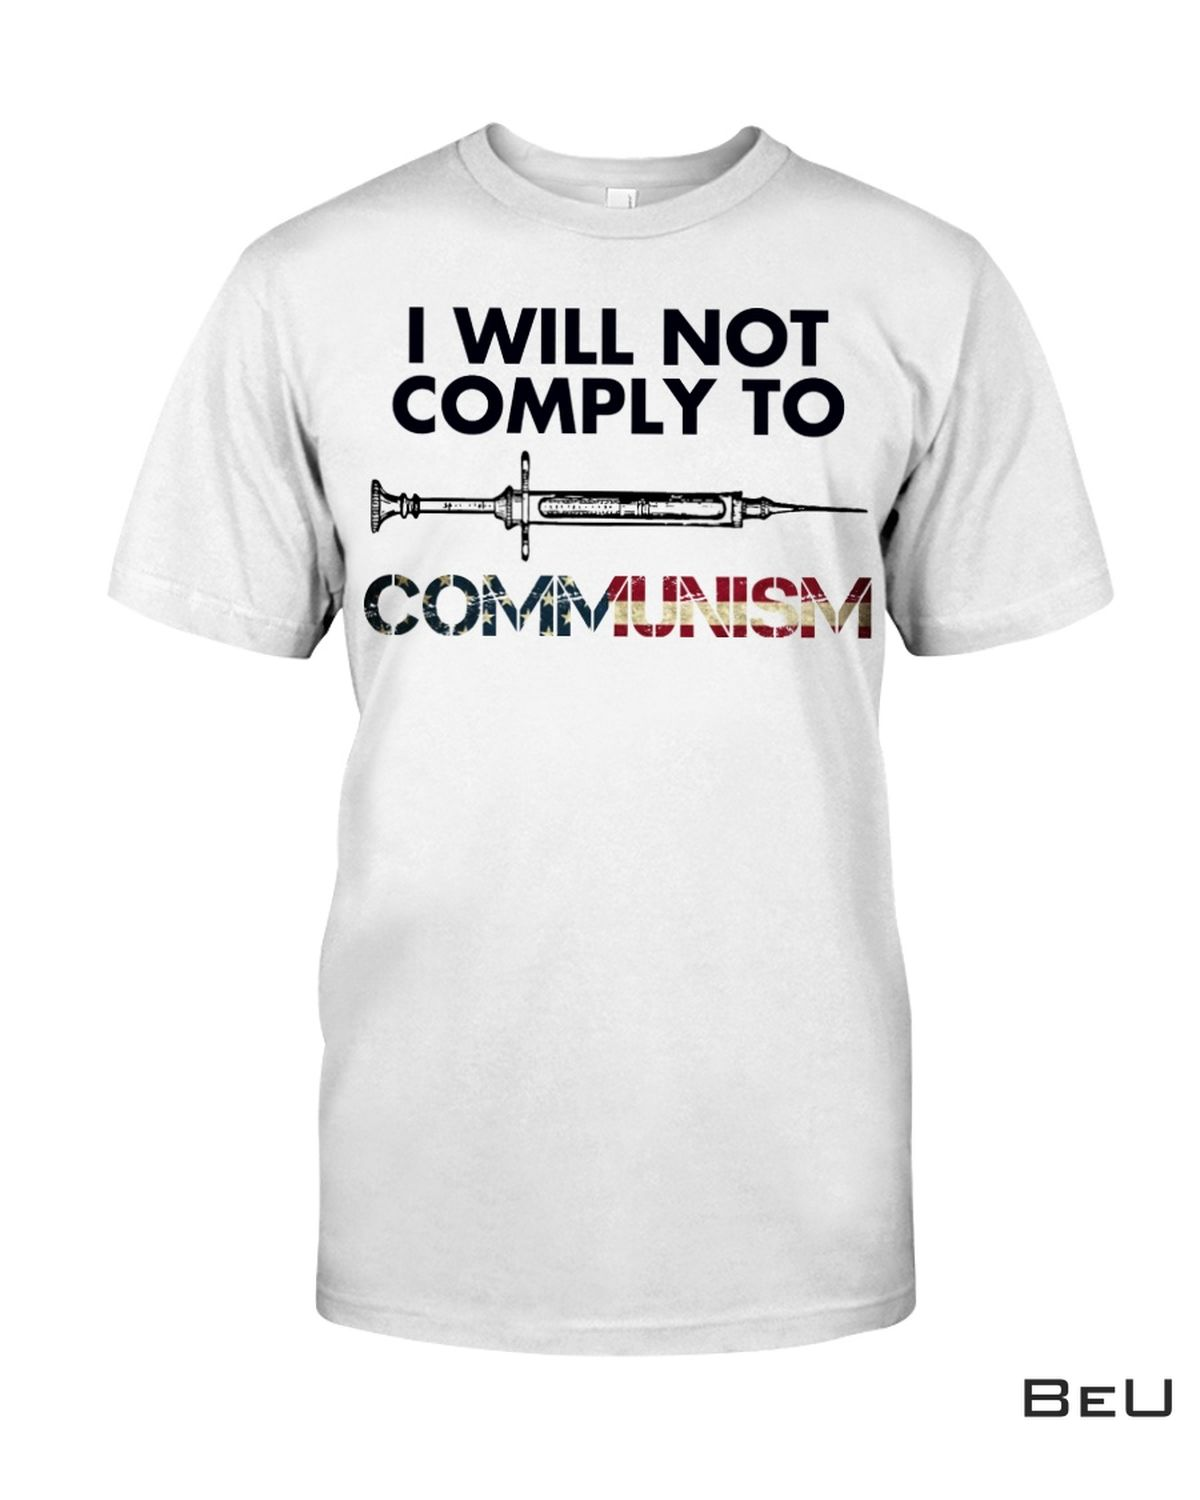 I Will Not Comply To Communism Shirt